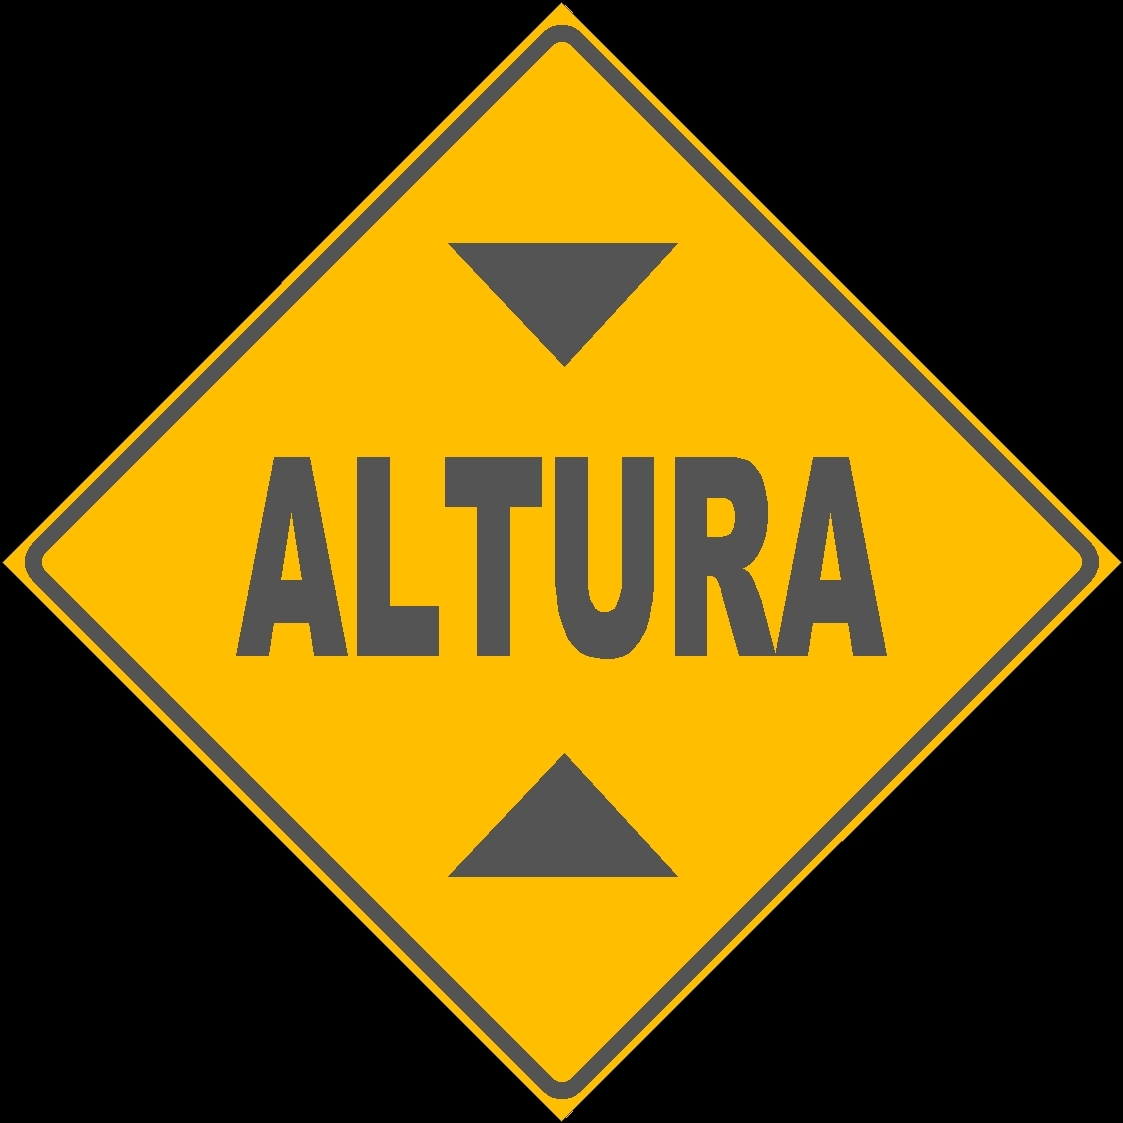 Road Signs And Symbols Caution Warning Brazil Dwg Block